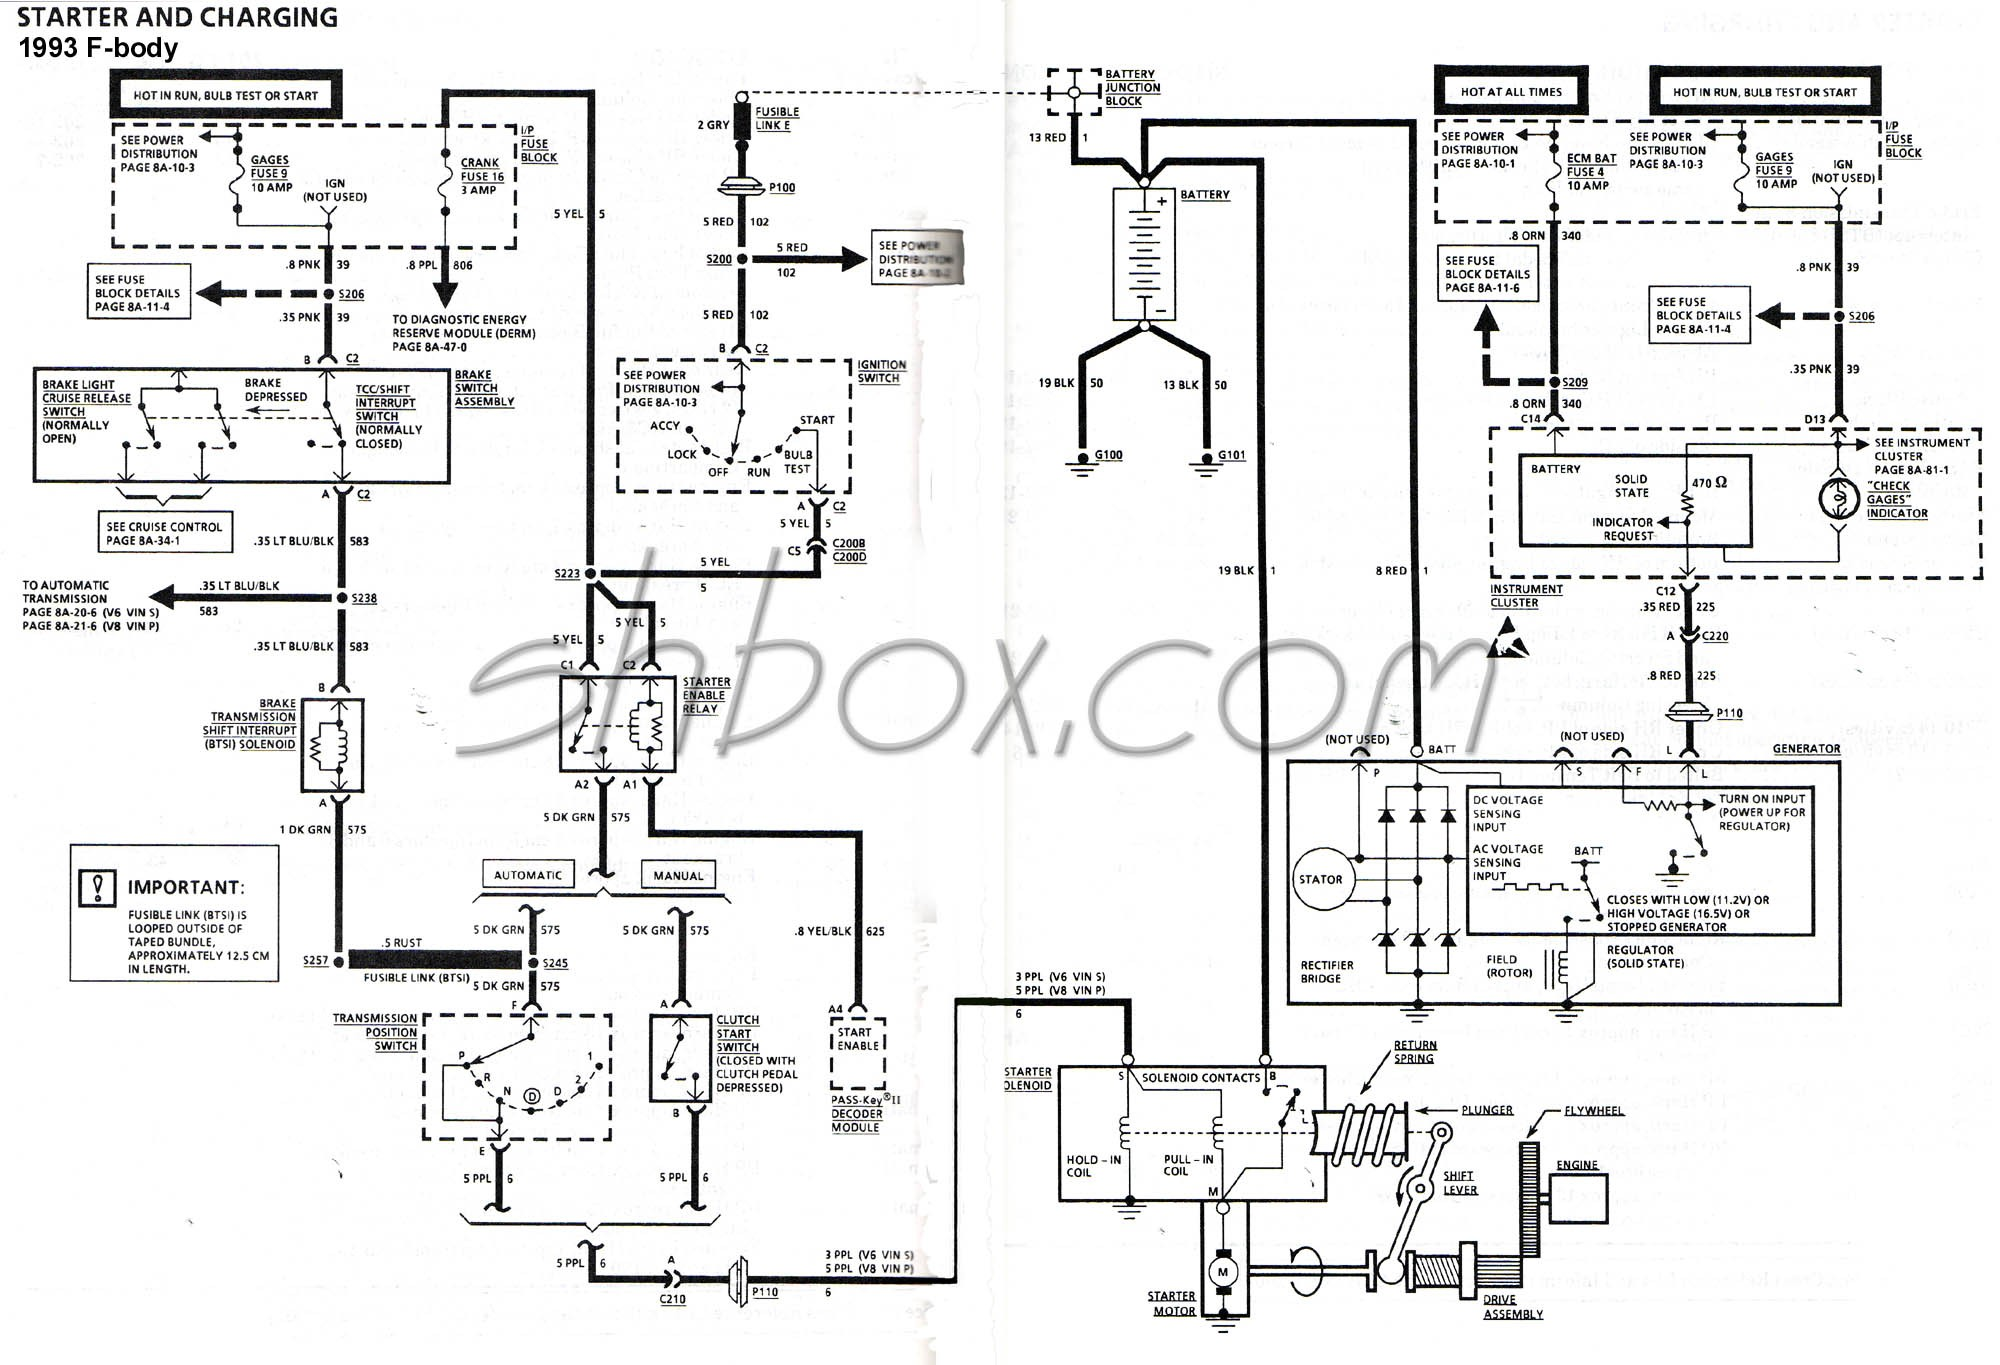 Charging System Wiring Diagram Caprice Alternator Wiring Diagram Caprice Best Collection Electrical Of Charging System Wiring Diagram